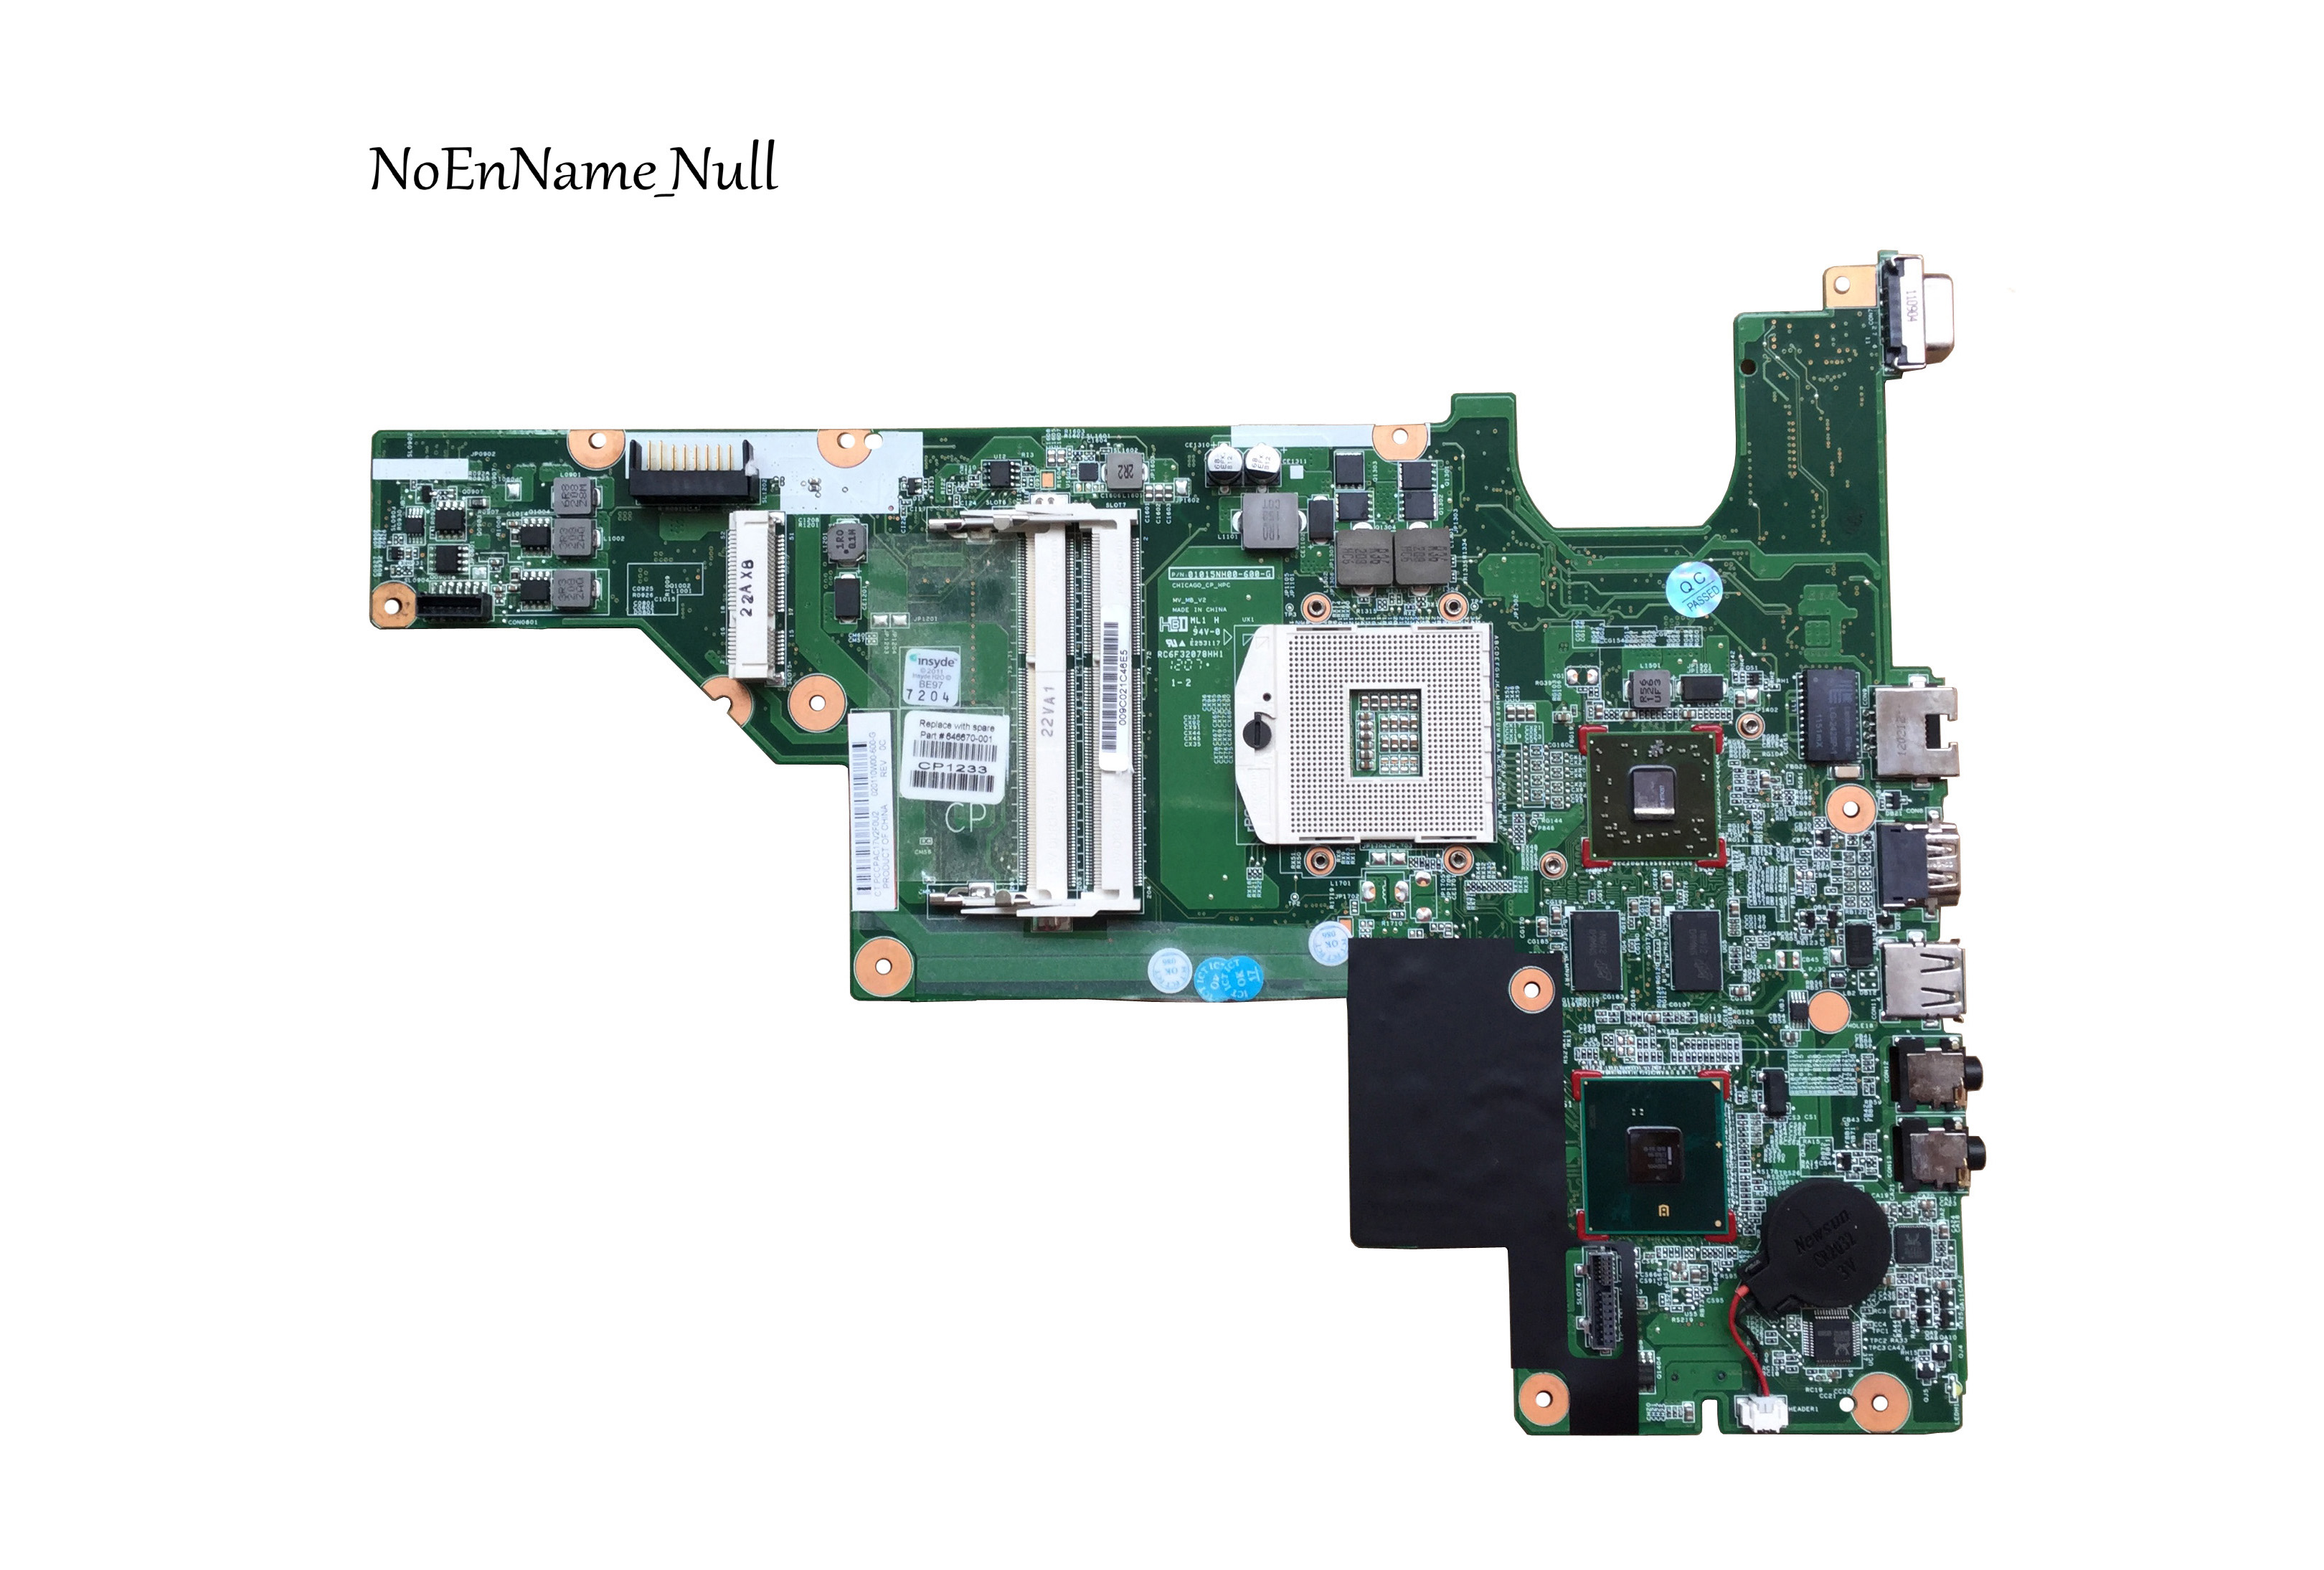 646670-001 Free Shipping Laptop Motherboard For HP CQ431 431 631 Motherboard 646670-001 Fully Tested